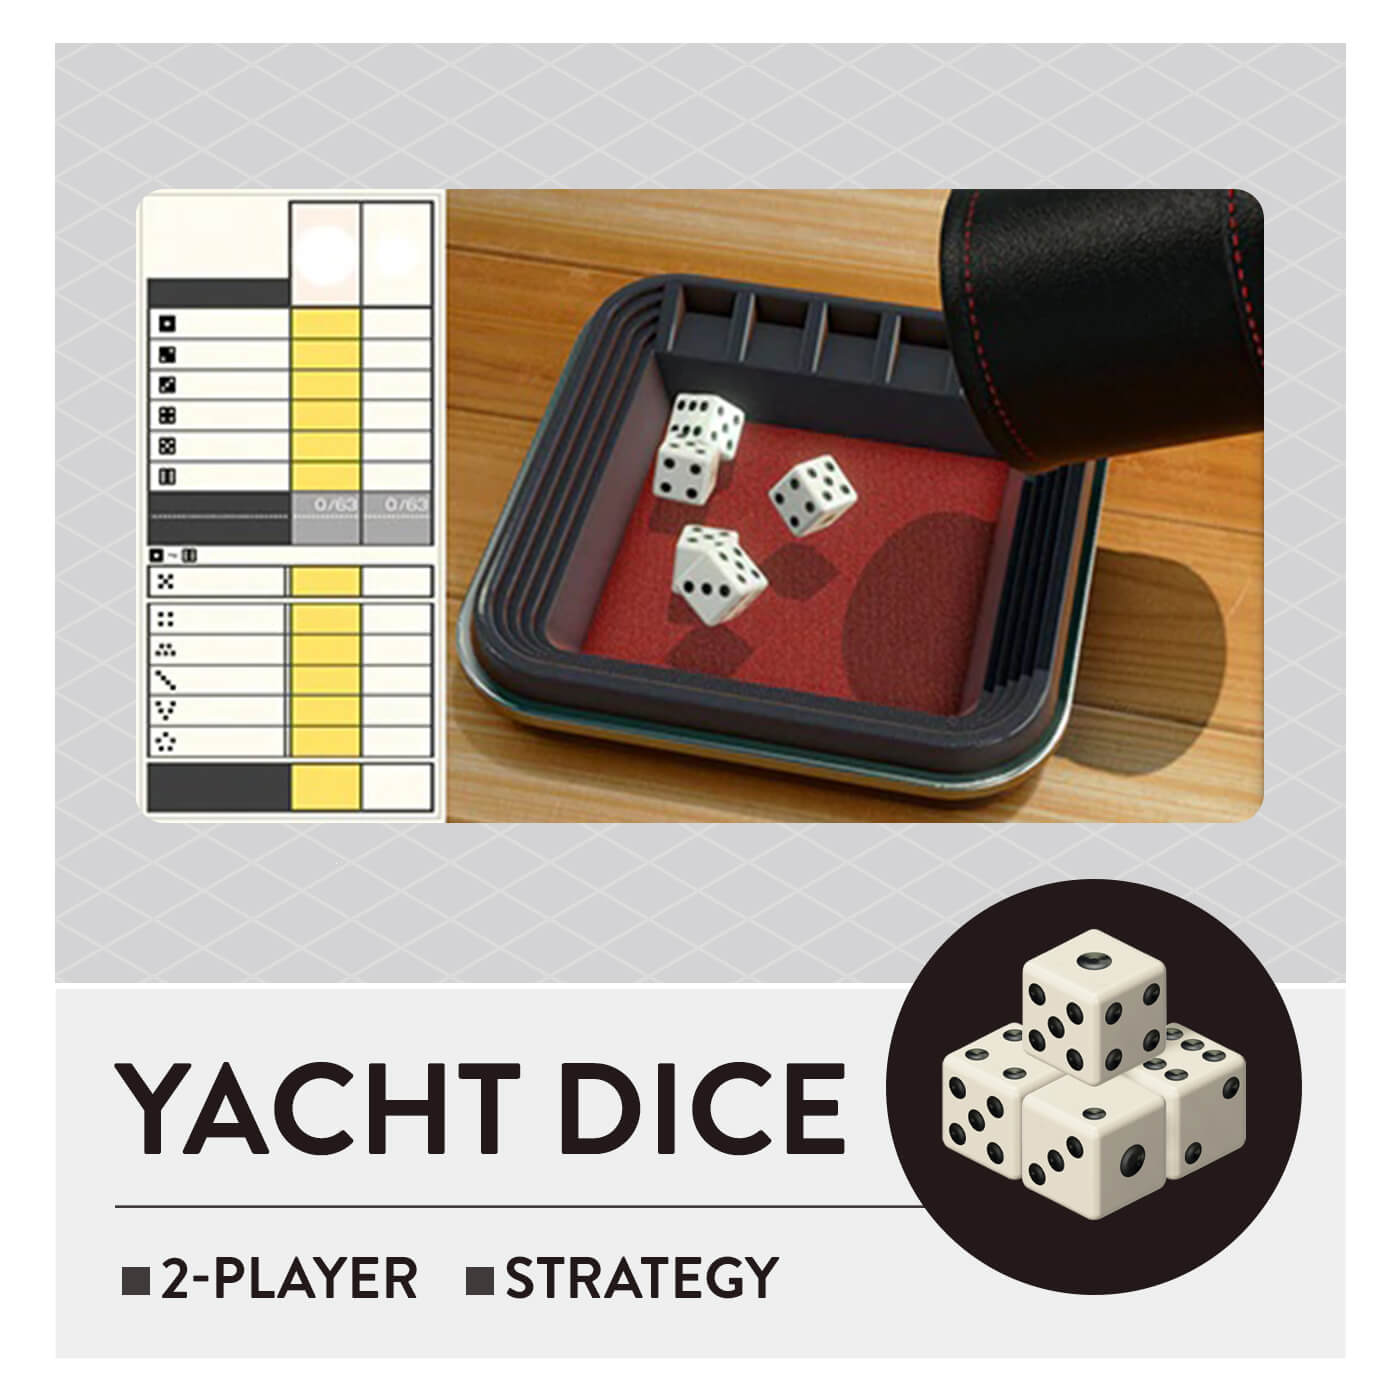 51 Worldwide Games - Yacht Dice